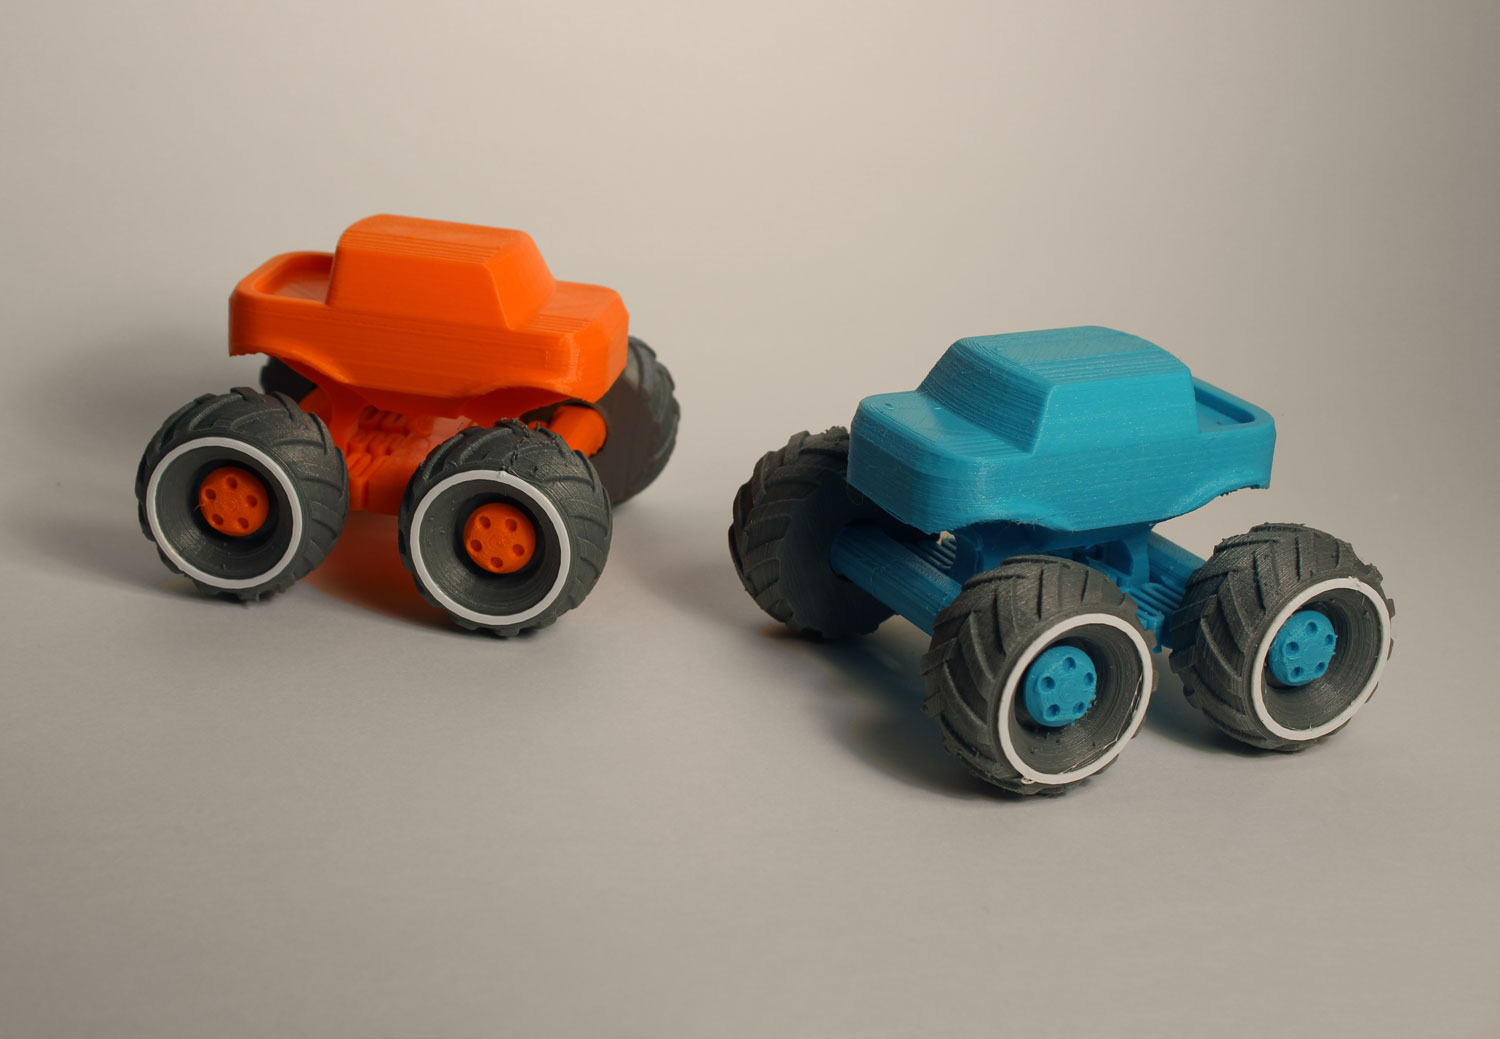 3d printed monster truck car vehicle orange blue wheel child toy